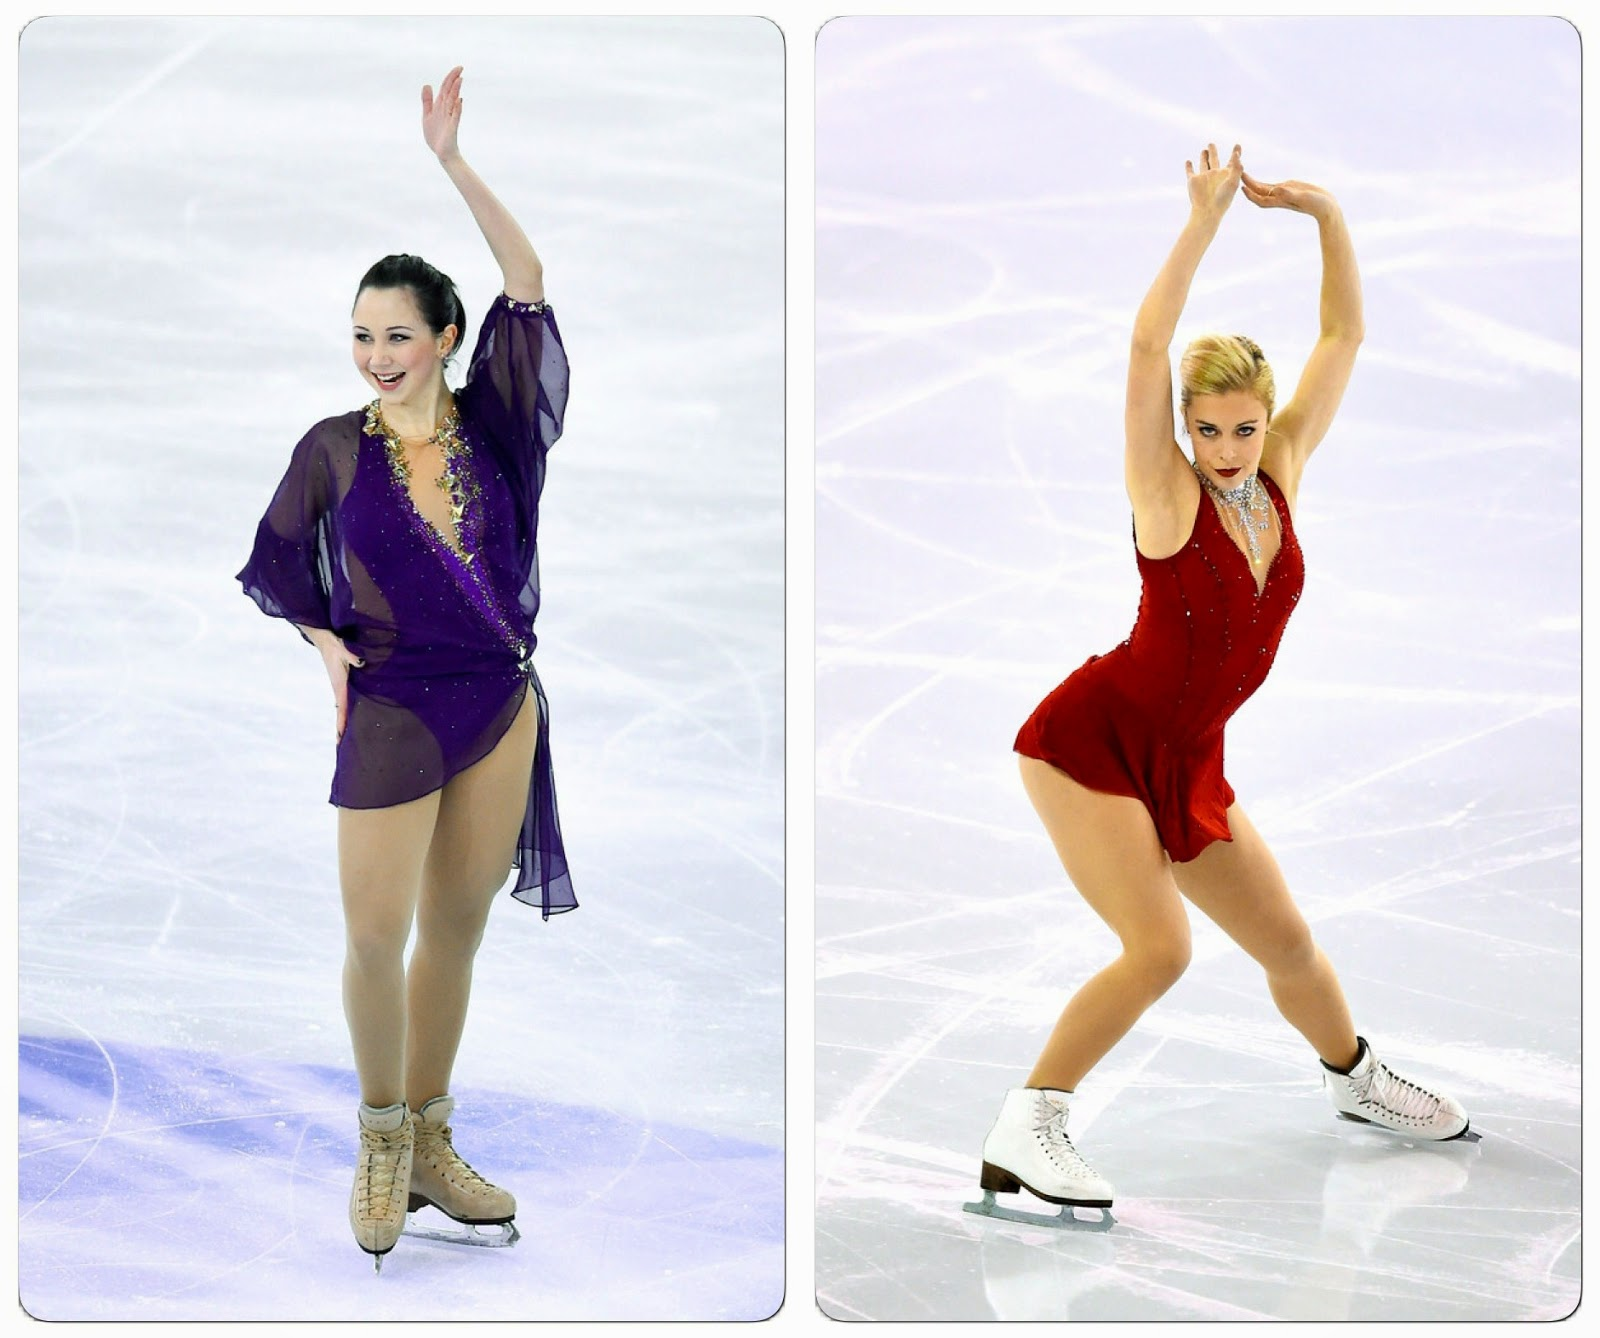 Grand Prix in figure skating in the 2017-2018 year 57